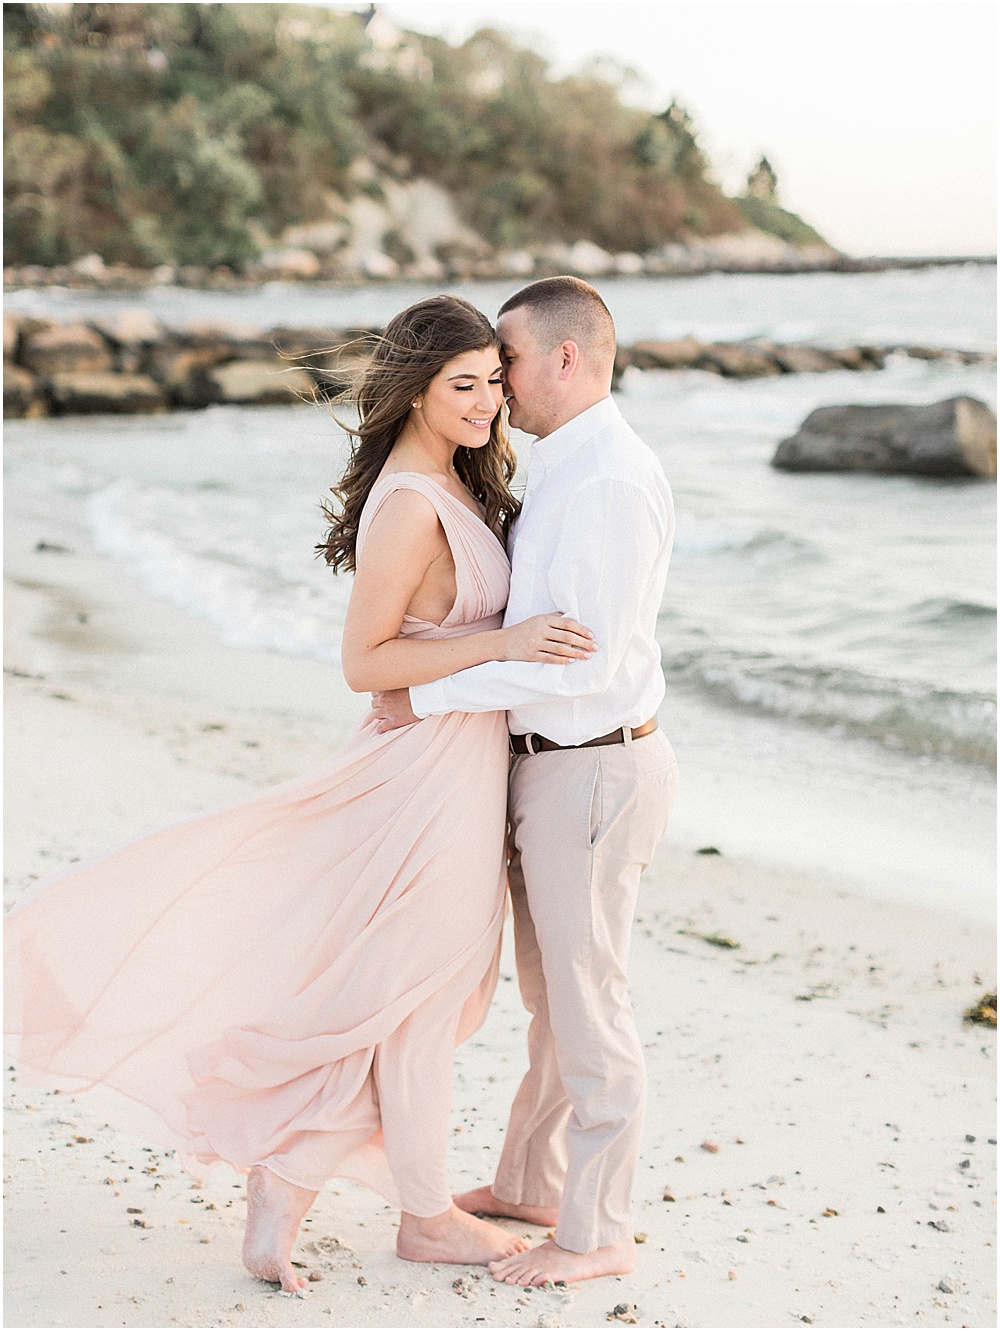 chartroom_old_silver_beach_seacrest_sunset_spring_engagement_session_boston_wedding_photographer_meredith_jane_photography_photo_0248.jpg